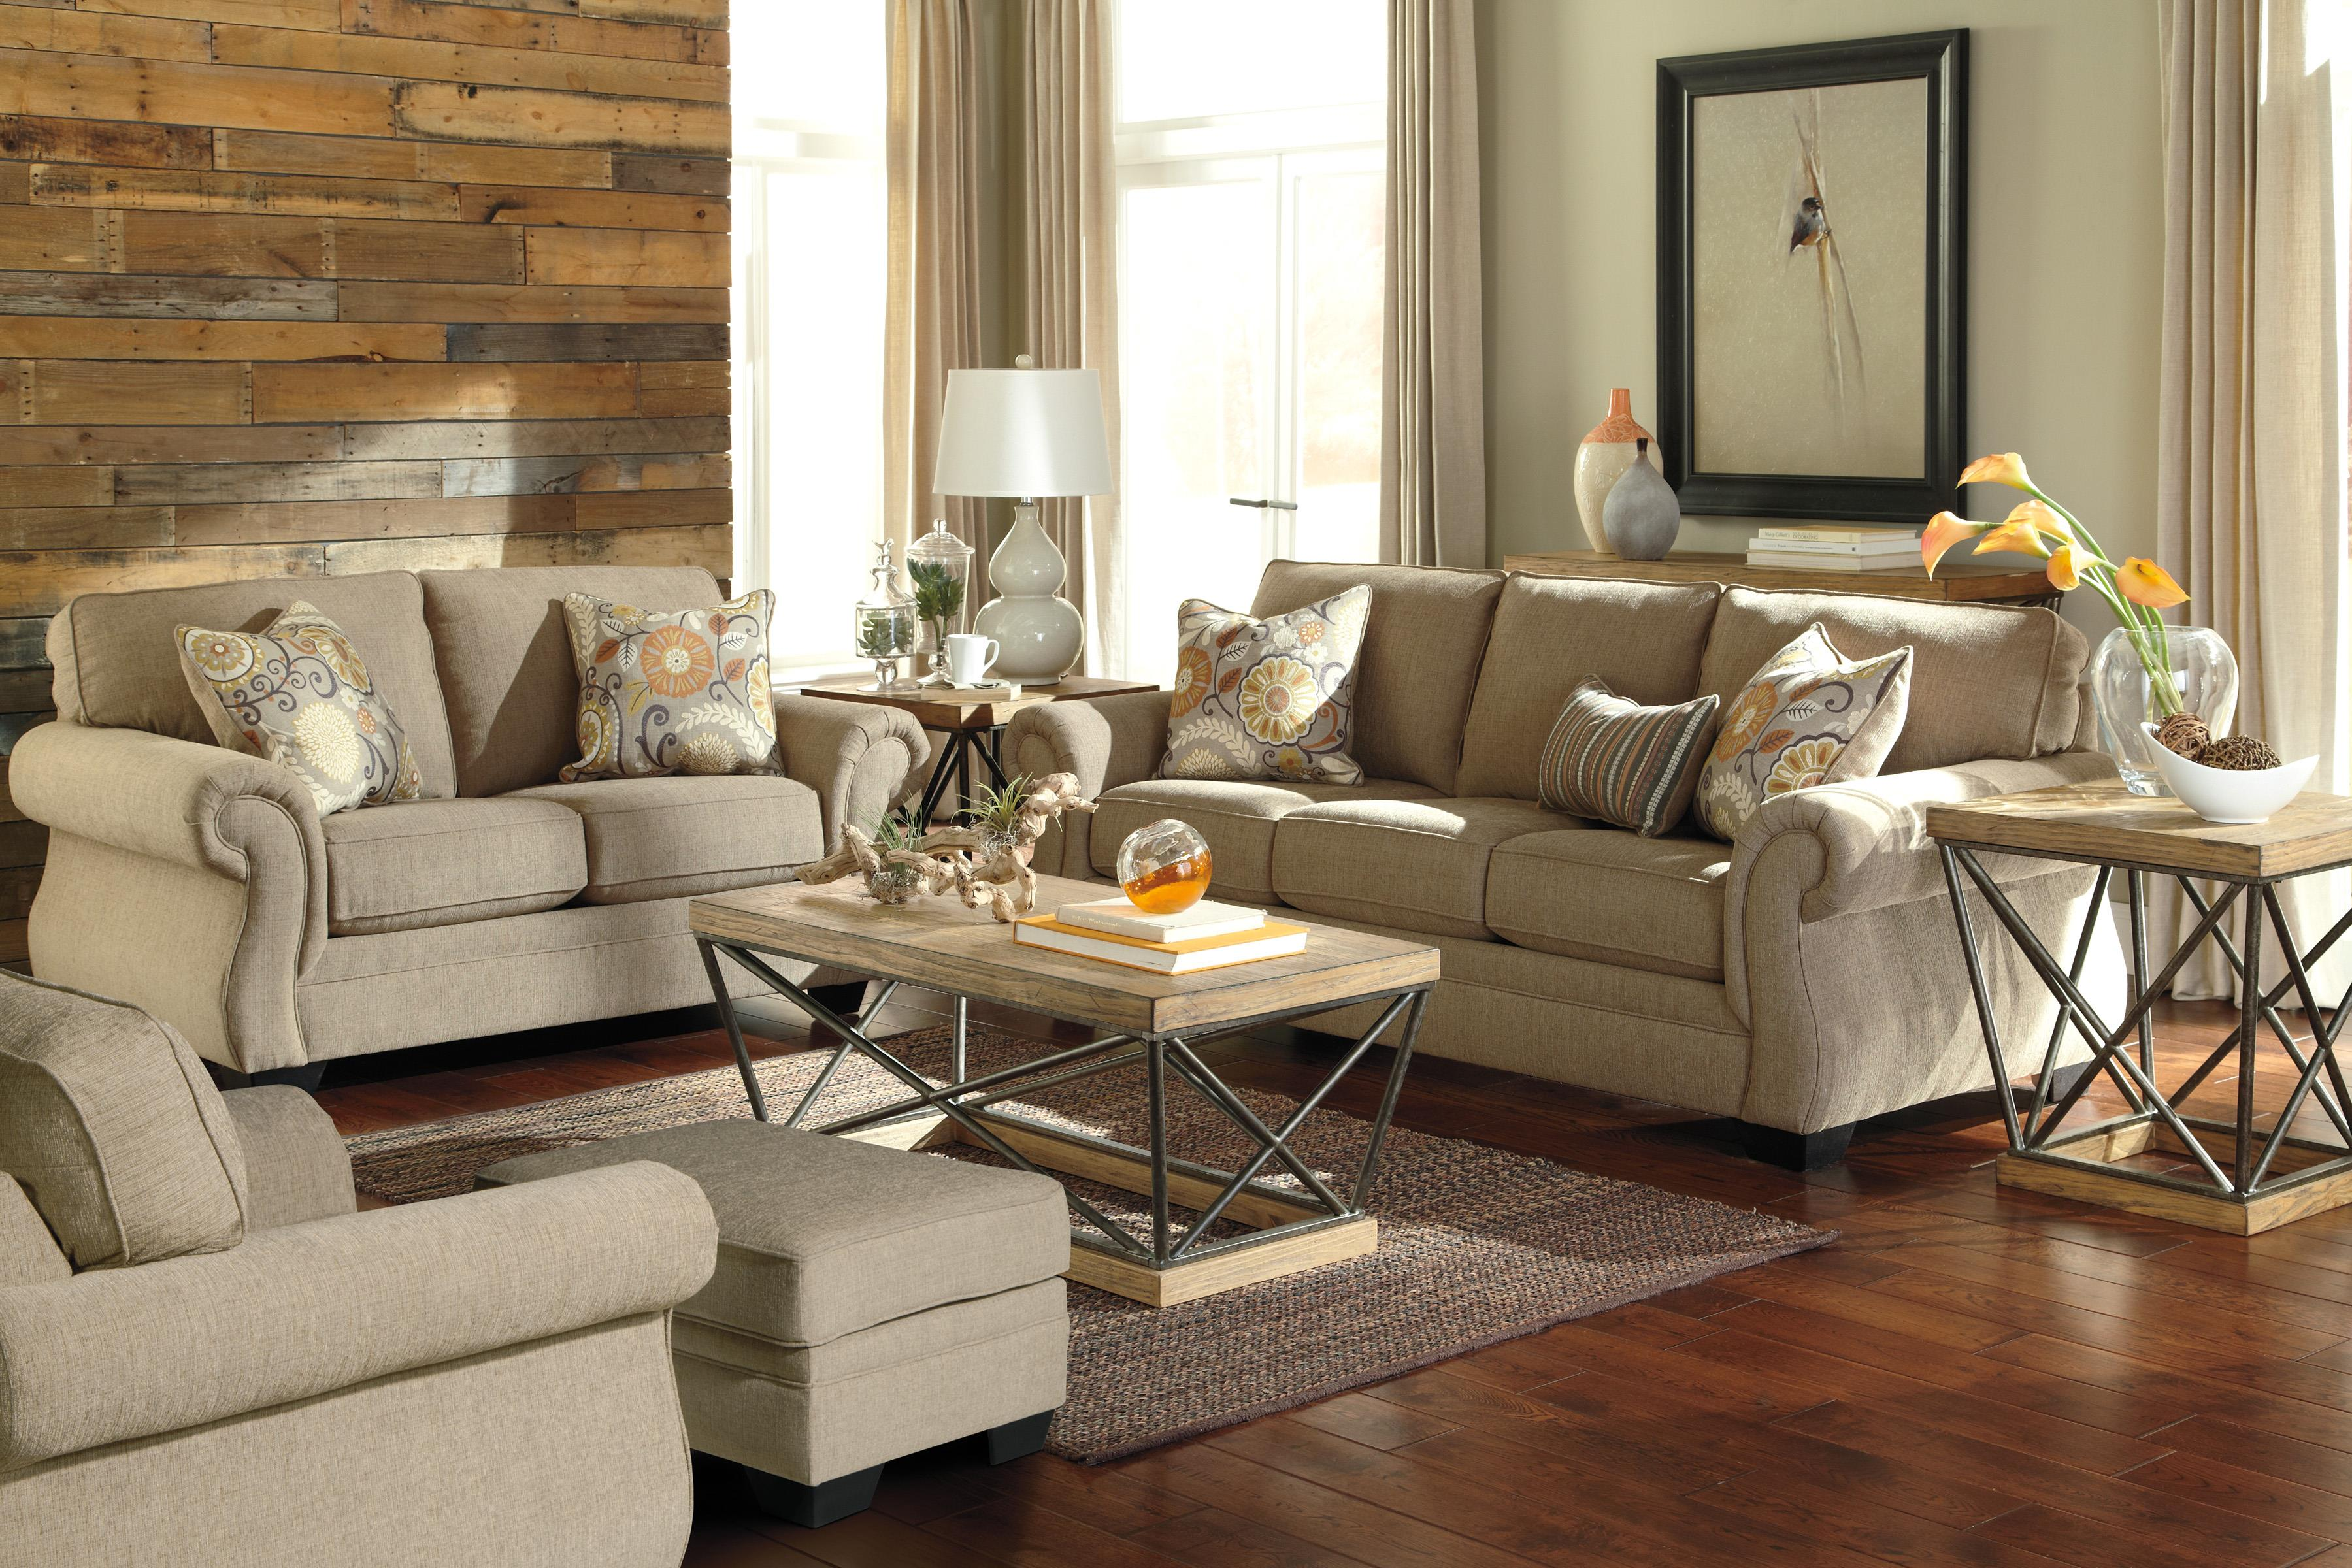 Benchcraft Tailya Stationary Living Room Group - Item Number: 47700 Living Room Group 3